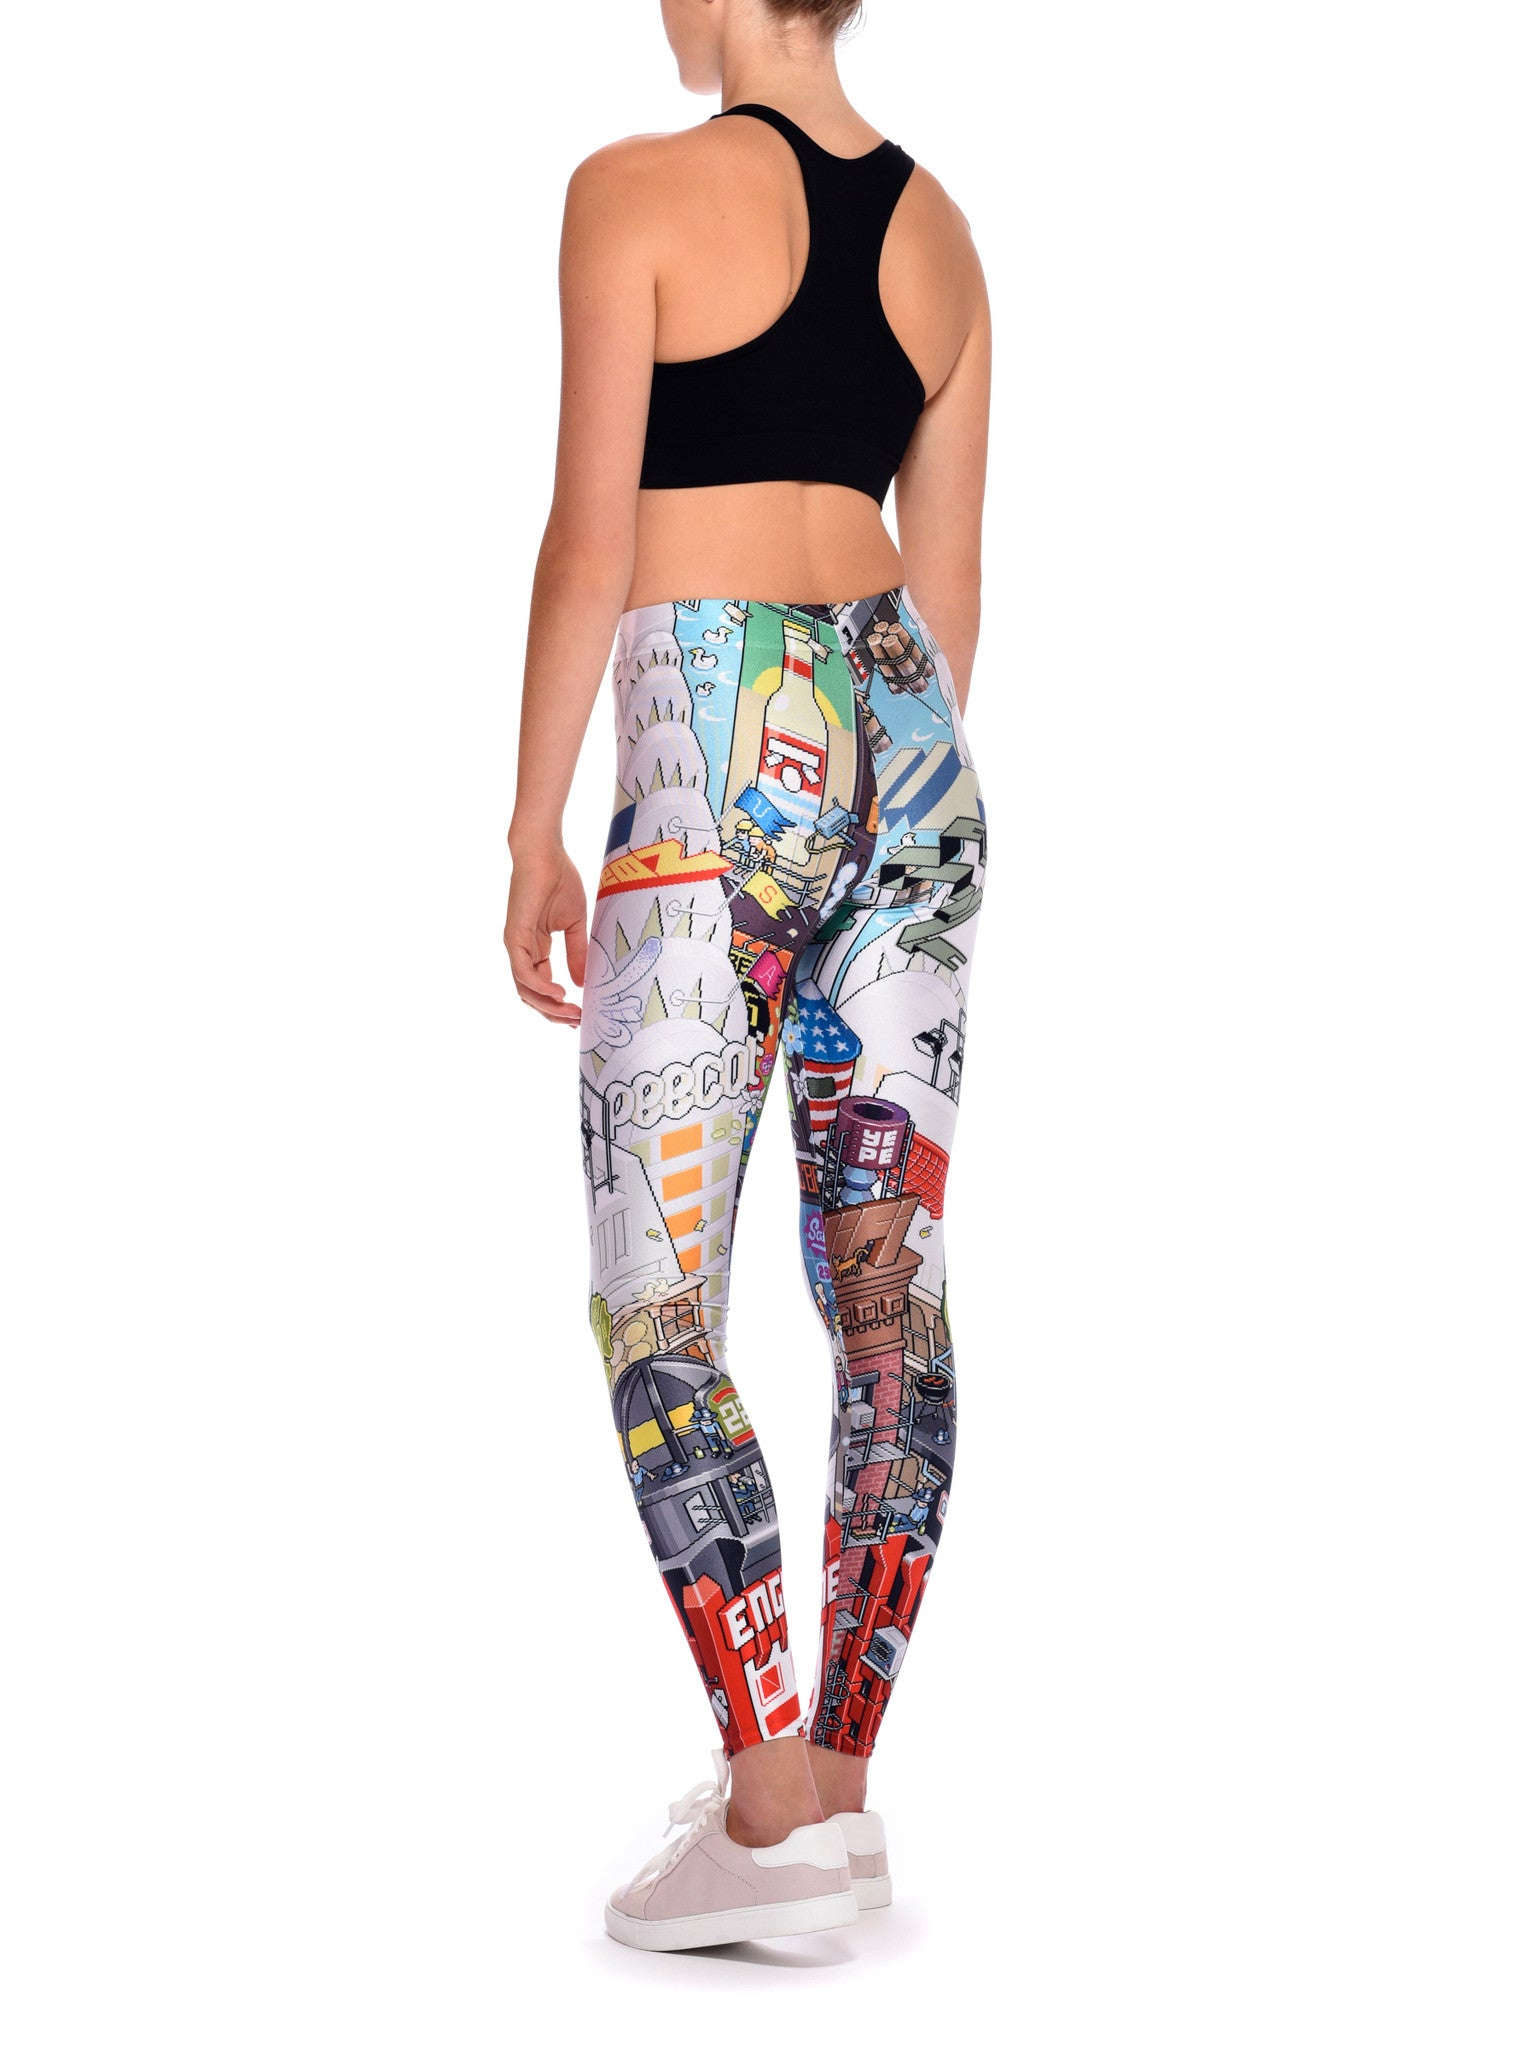 NYC Queen West Leggings - Nuvango Gallery & Goods - 3